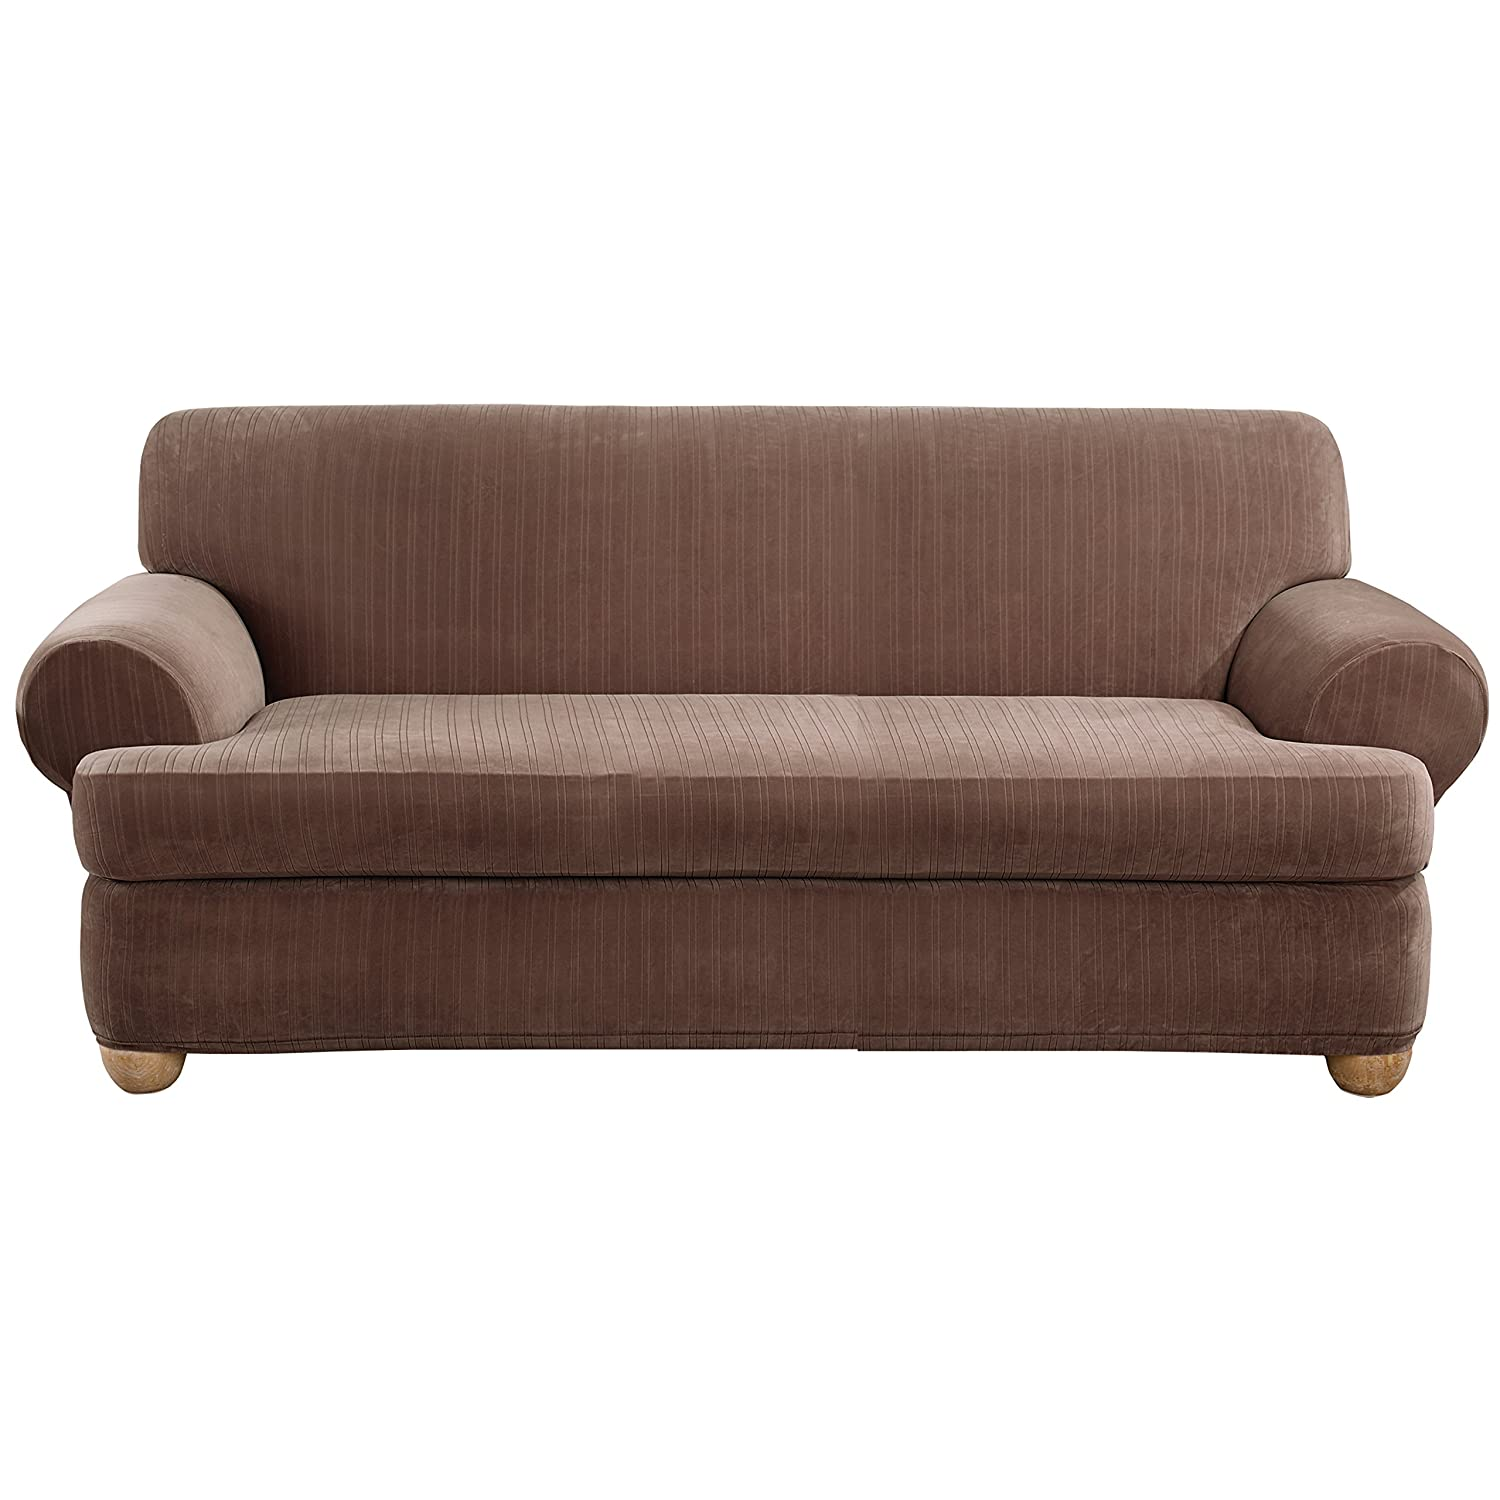 Amazon Sure Fit Stretch Pinstripe 2 Piece Sofa Slipcover